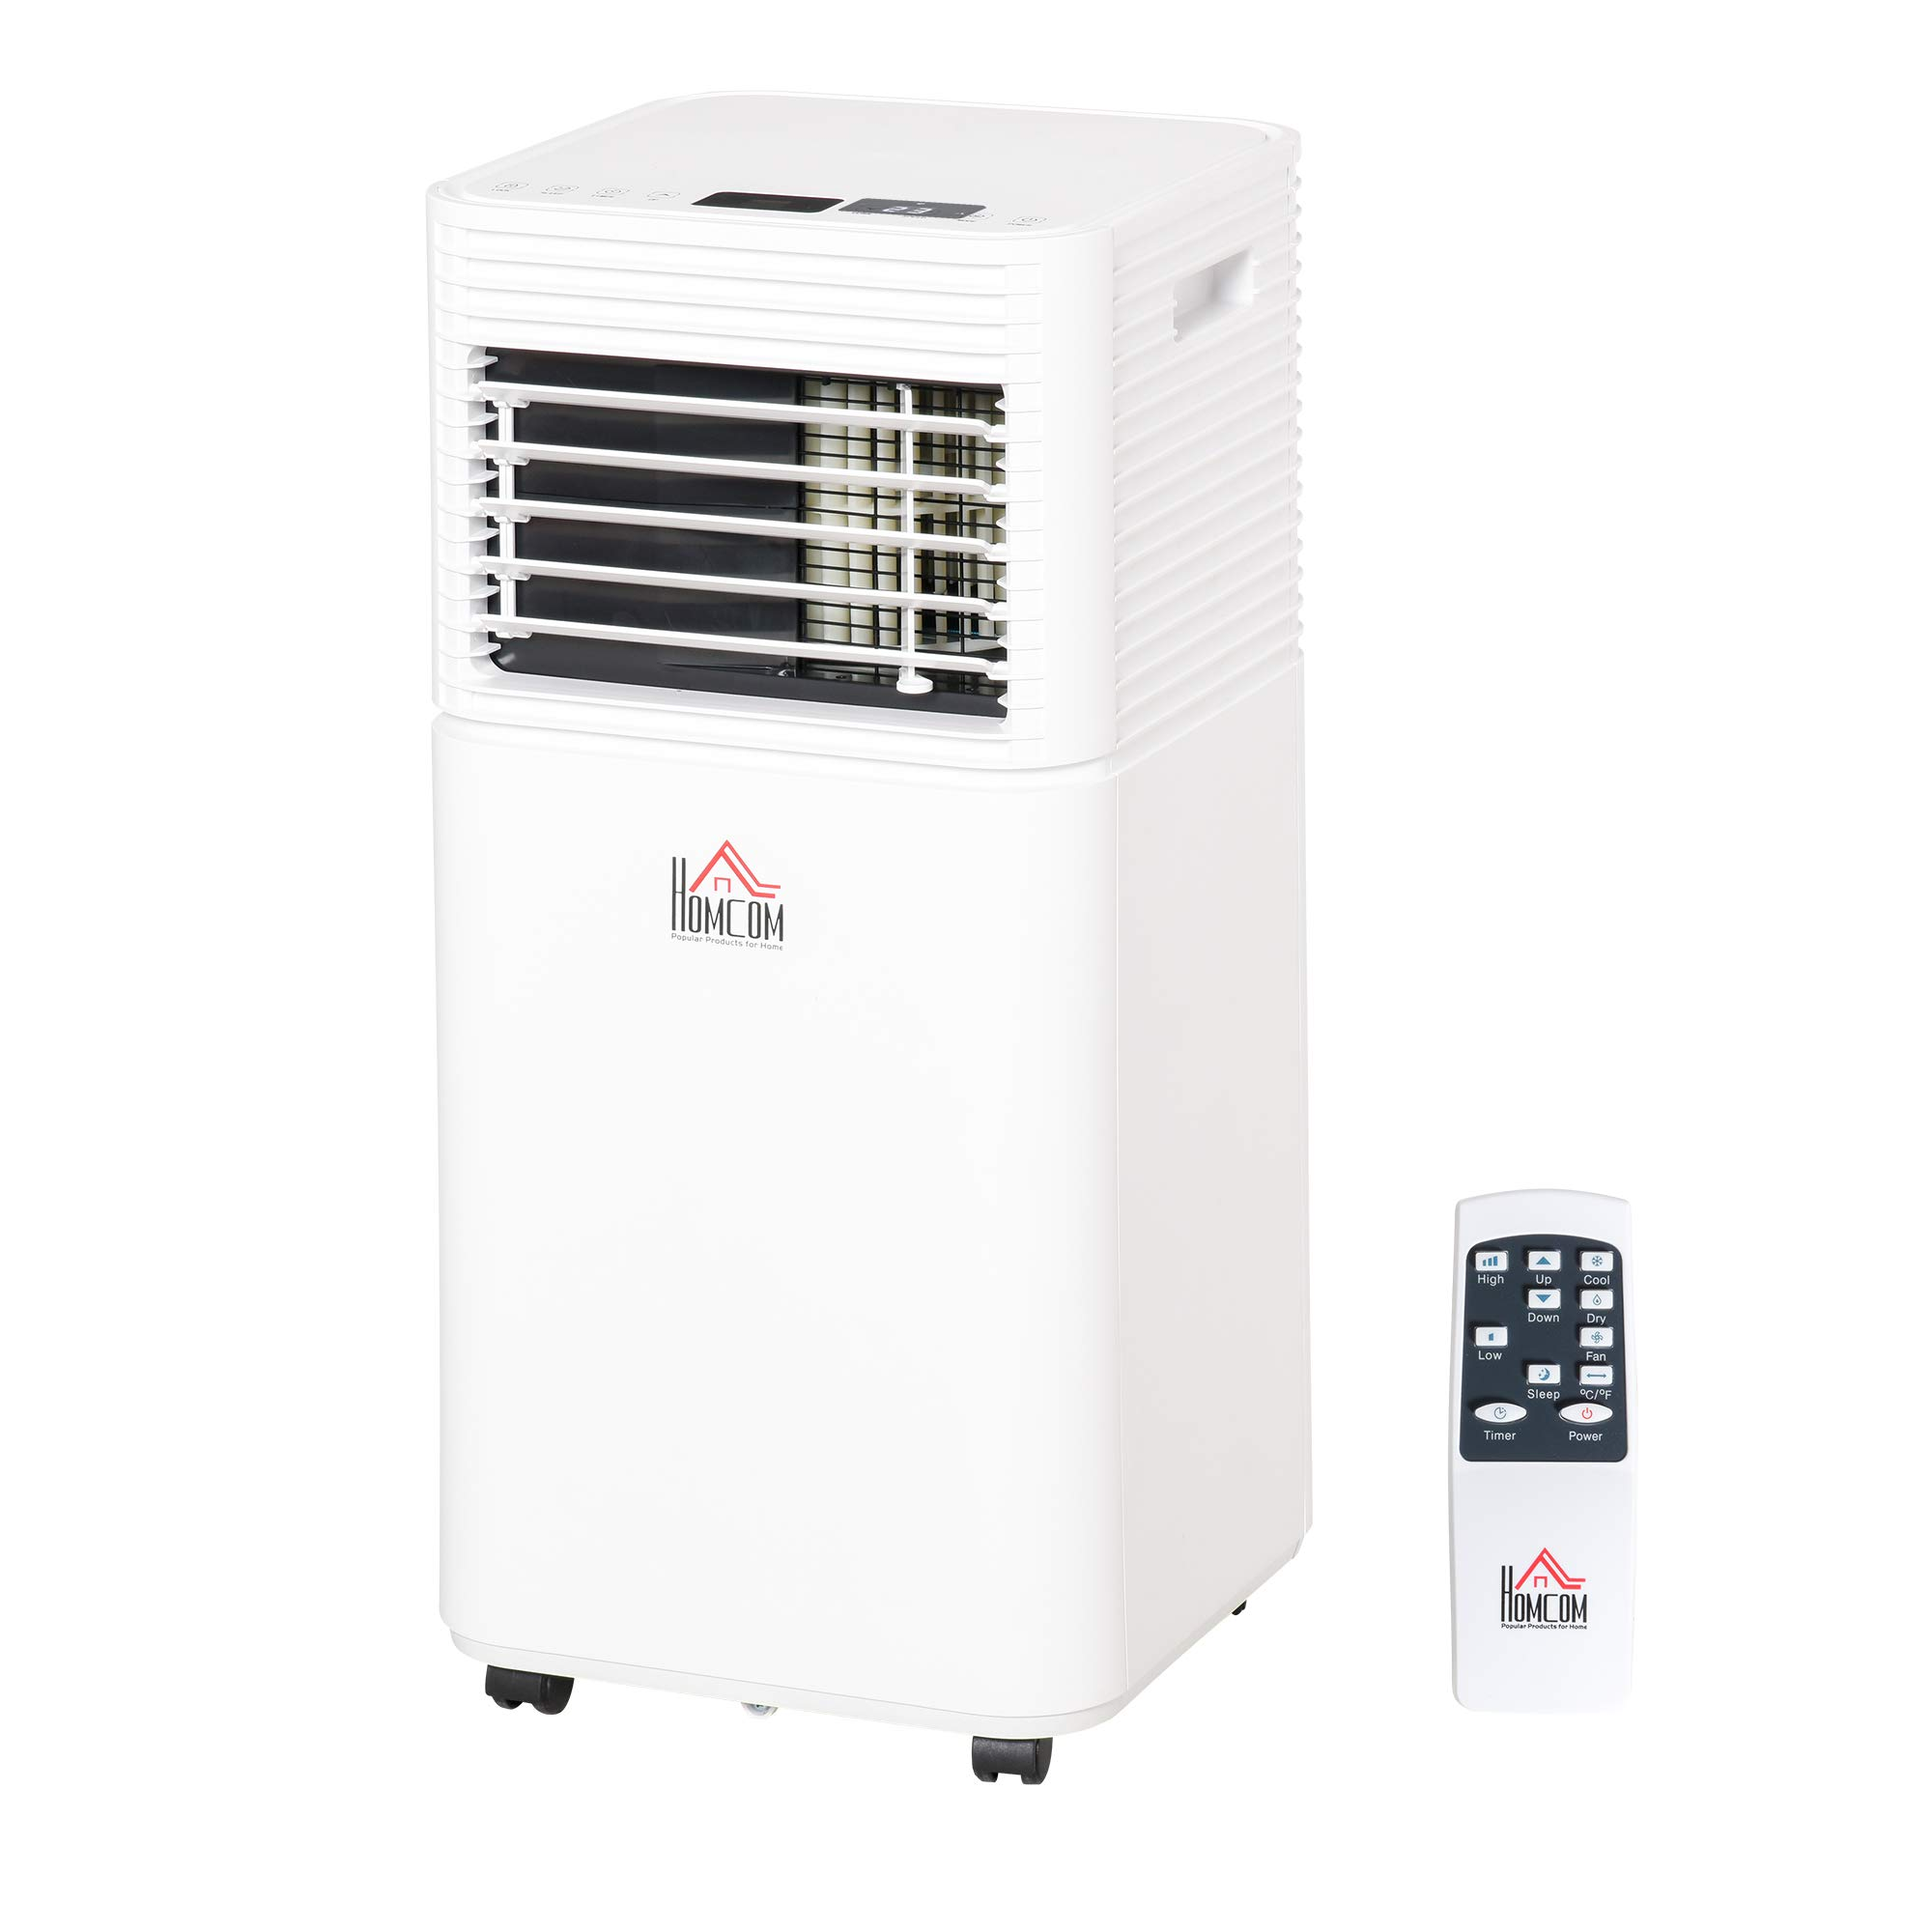 HOMCOM 7000 BTU Portable Mobile Air Conditioner for Cooling, Dehumidifying, and Ventilating with Remote Control, White